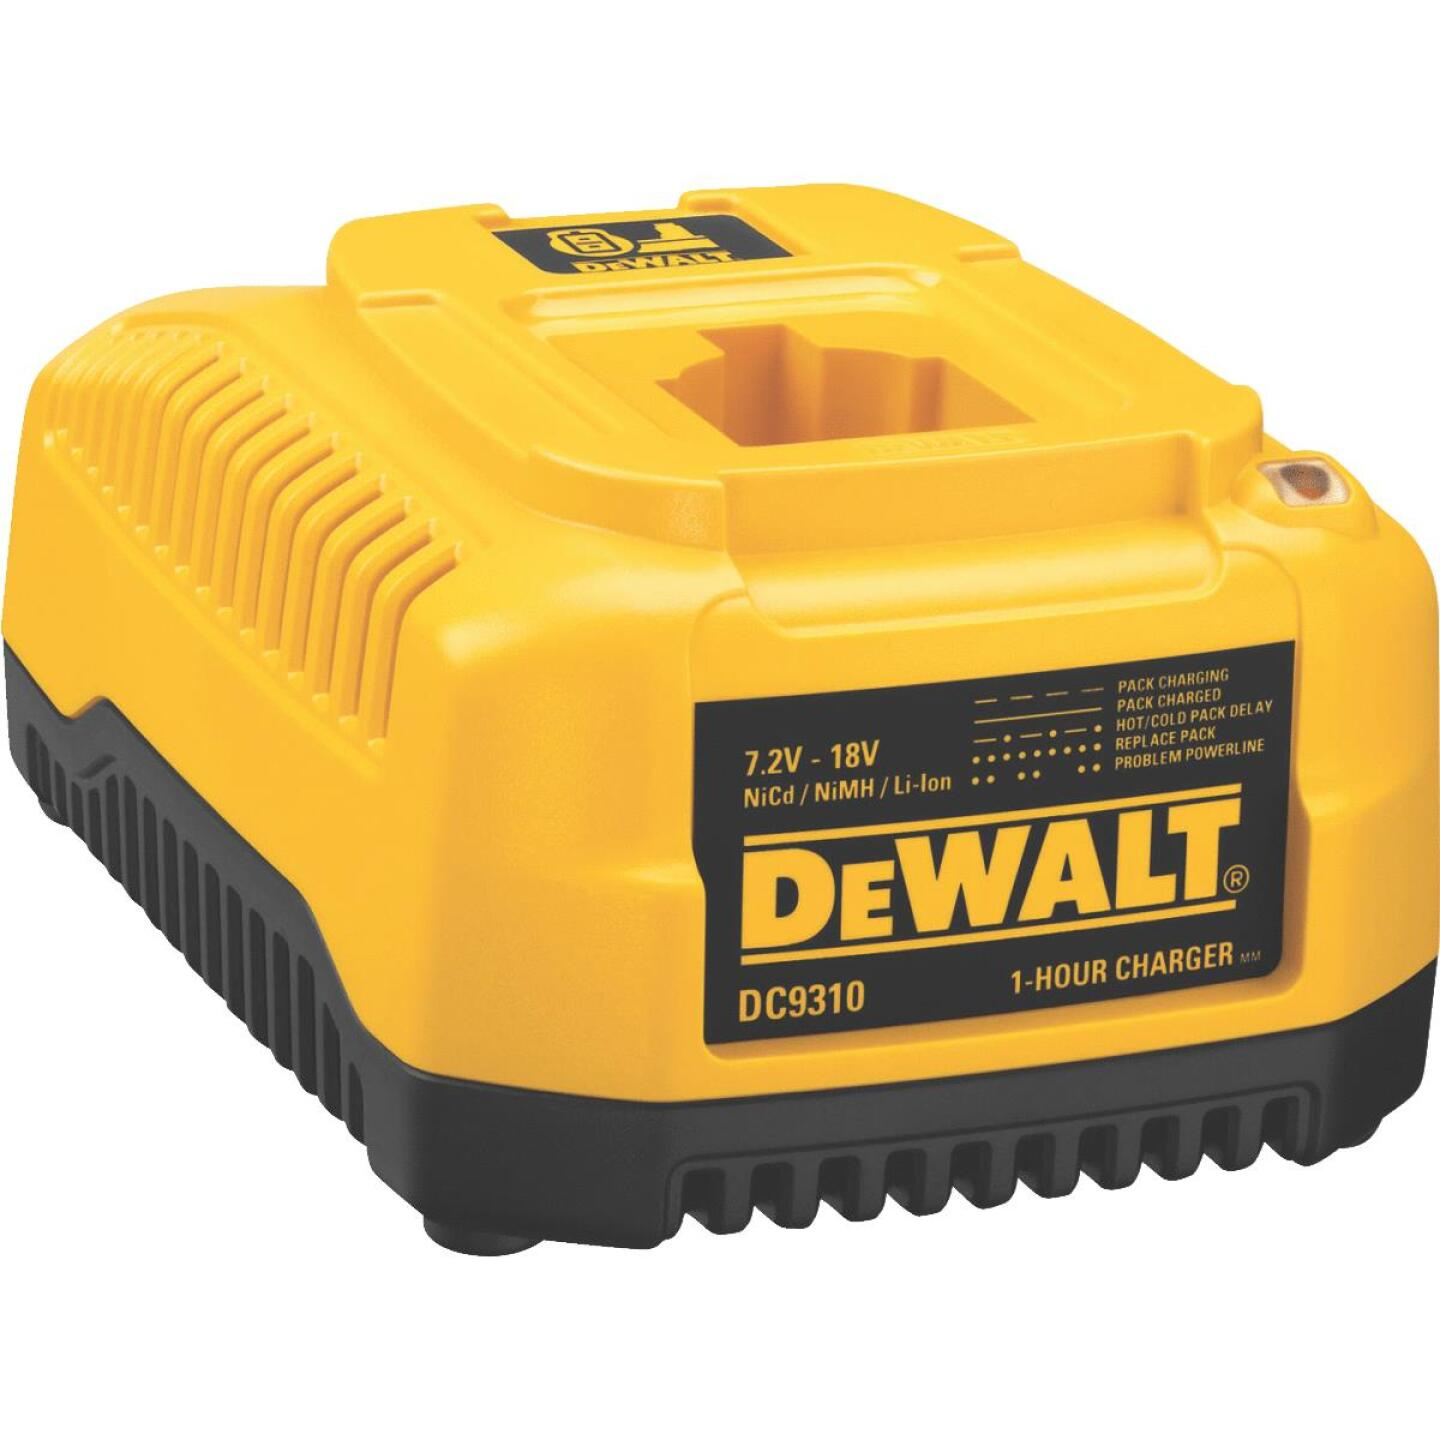 DeWalt 7.2-Volt to 18-Volt Nickel-Cadmium/Nickel-Metal Hydride/Lithium-Ion Fast Battery Charger Image 1